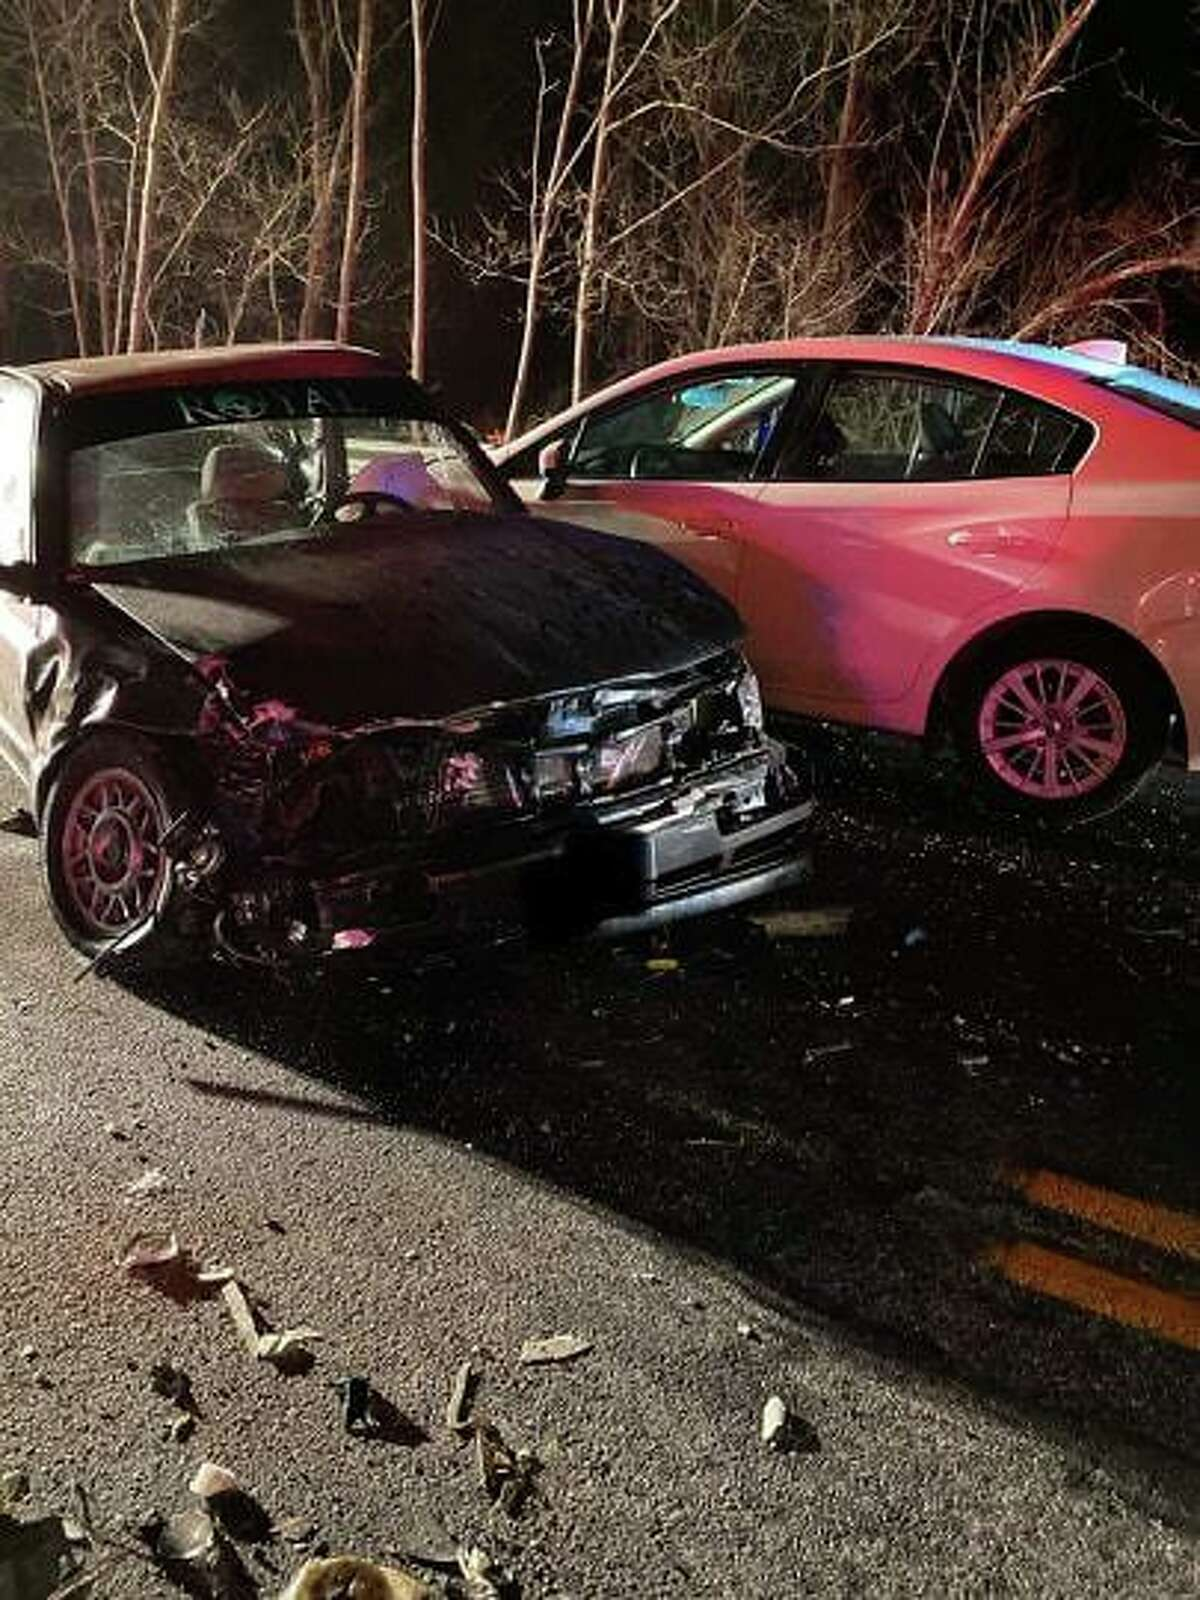 A three-car crash on Route 44 near Old North Road in Barkhamsted on Friday, Dec. 20 caused heavy delays and damage to involved vehicles. As of mid-day Dec. 21 only minor injuries had been reported.